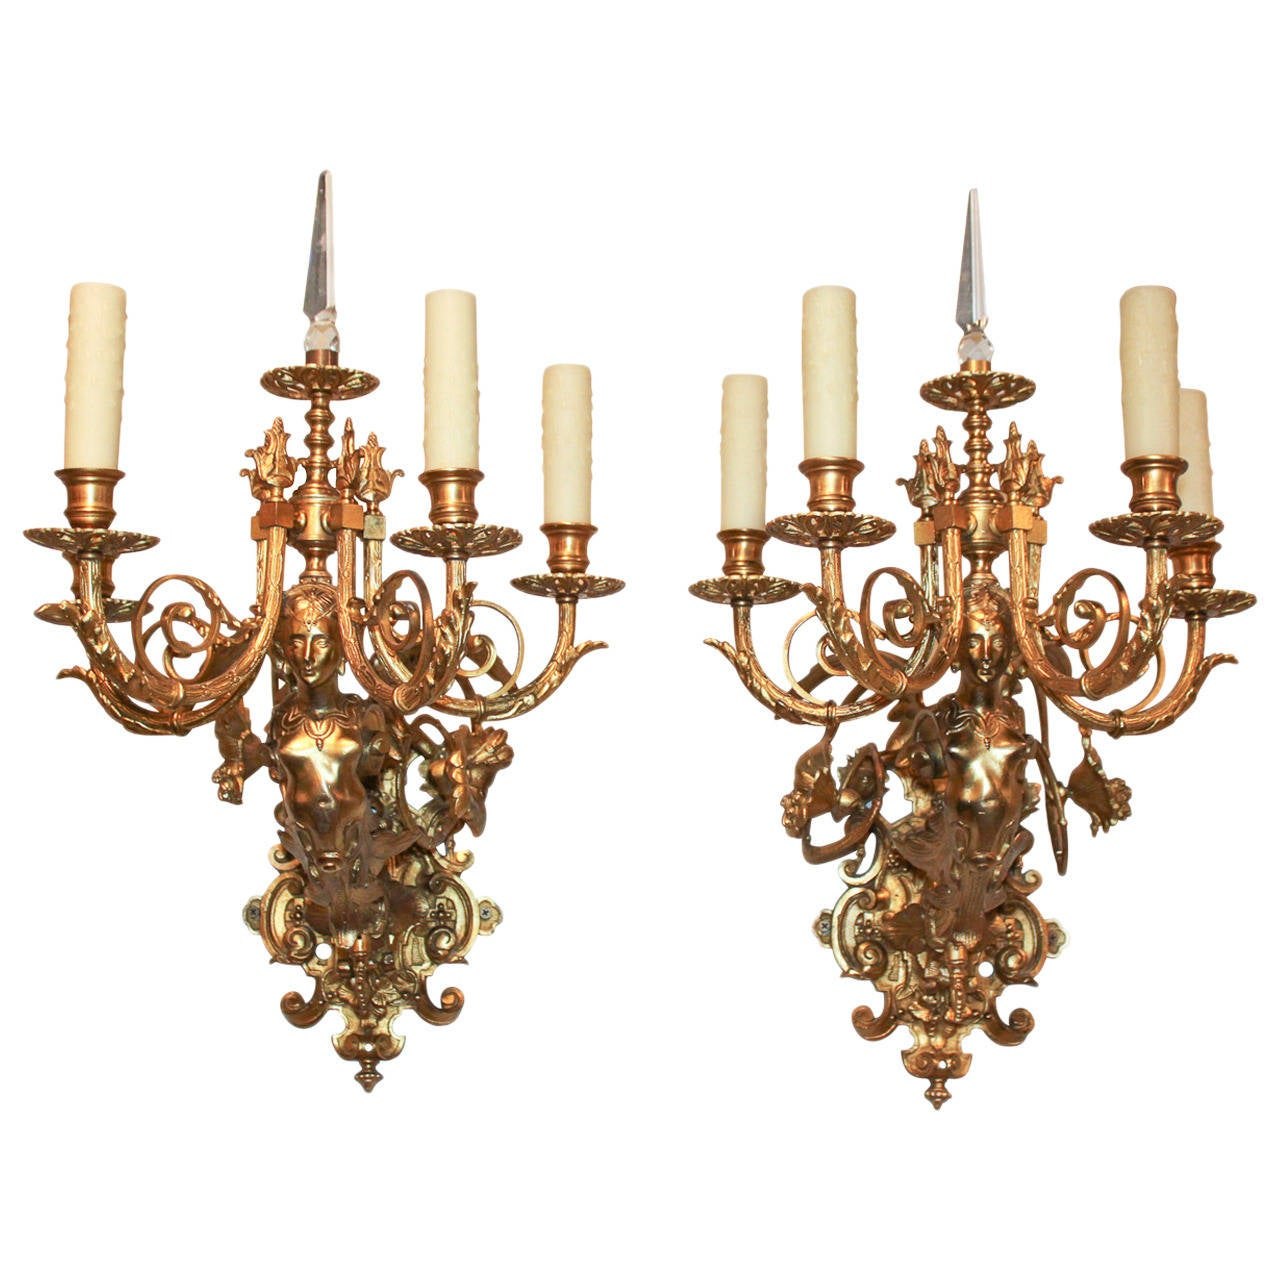 19th Century Pair Of French Bronze Sconces For Sale At 1stdibs